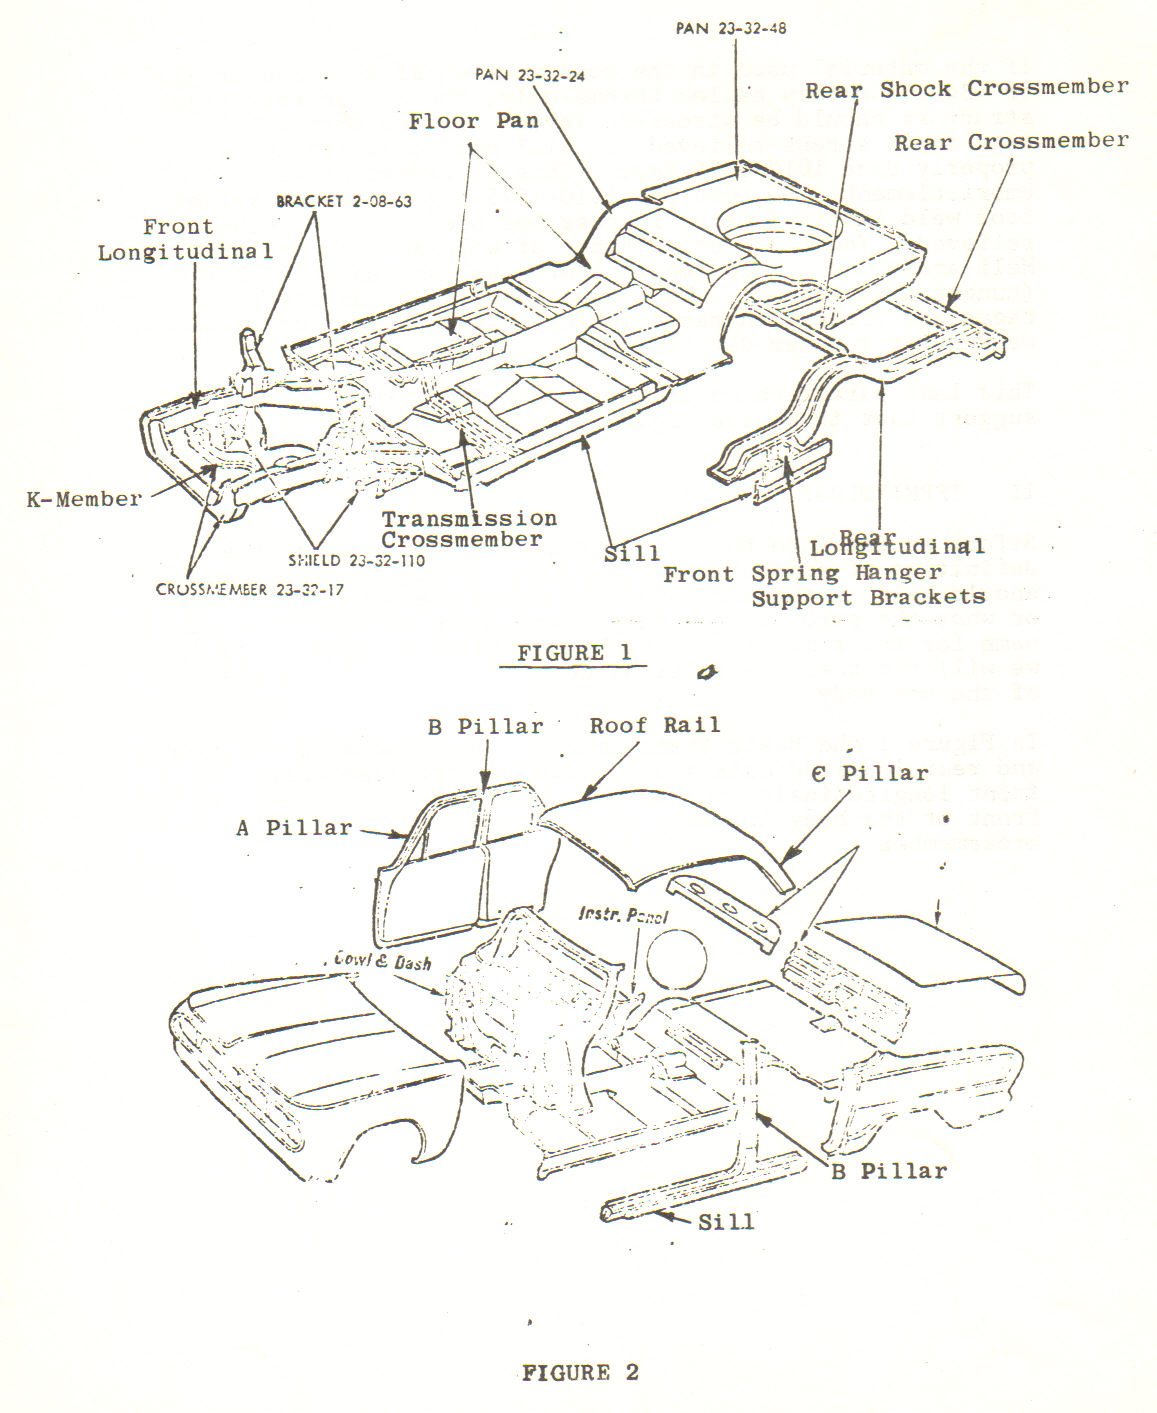 moparts on the web